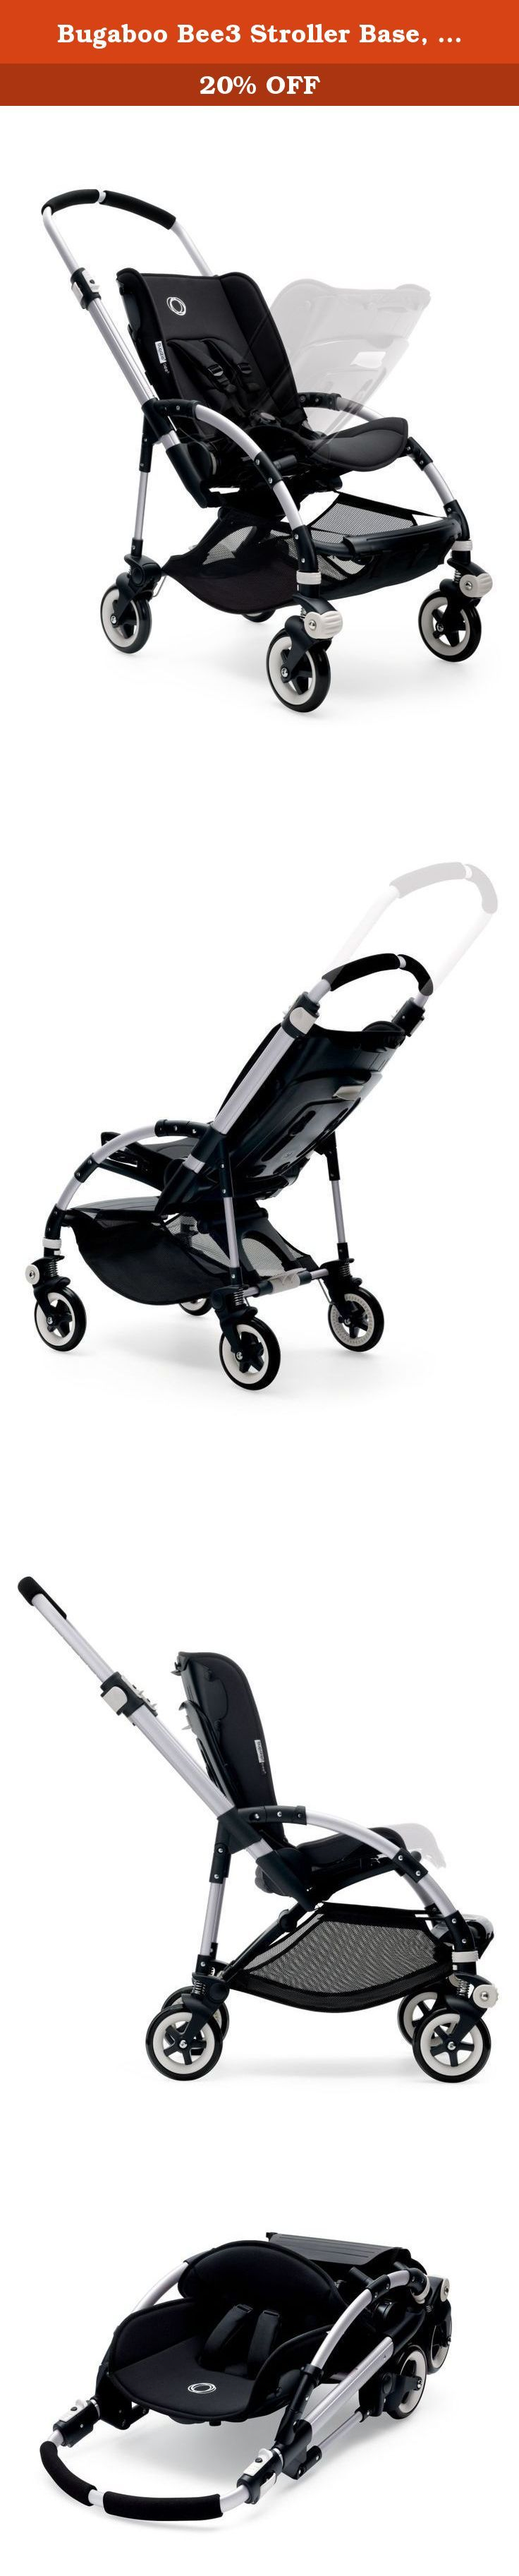 Bugaboo Bee3 Stroller Base, Aluminum. The Urban stroller for parents who live life on the fly. Designed specifically for parents who live life on the fly, the Bugaboo Bee3 for newborn to toddler features an easy to carry lightweight bassinet for exploring the city without disturbing your sleeping child - and an extendable sun canopy offering them even more protection. Brand new fabrics and colors offer creative style combinations and refresh options, while a larger undersea basket means…